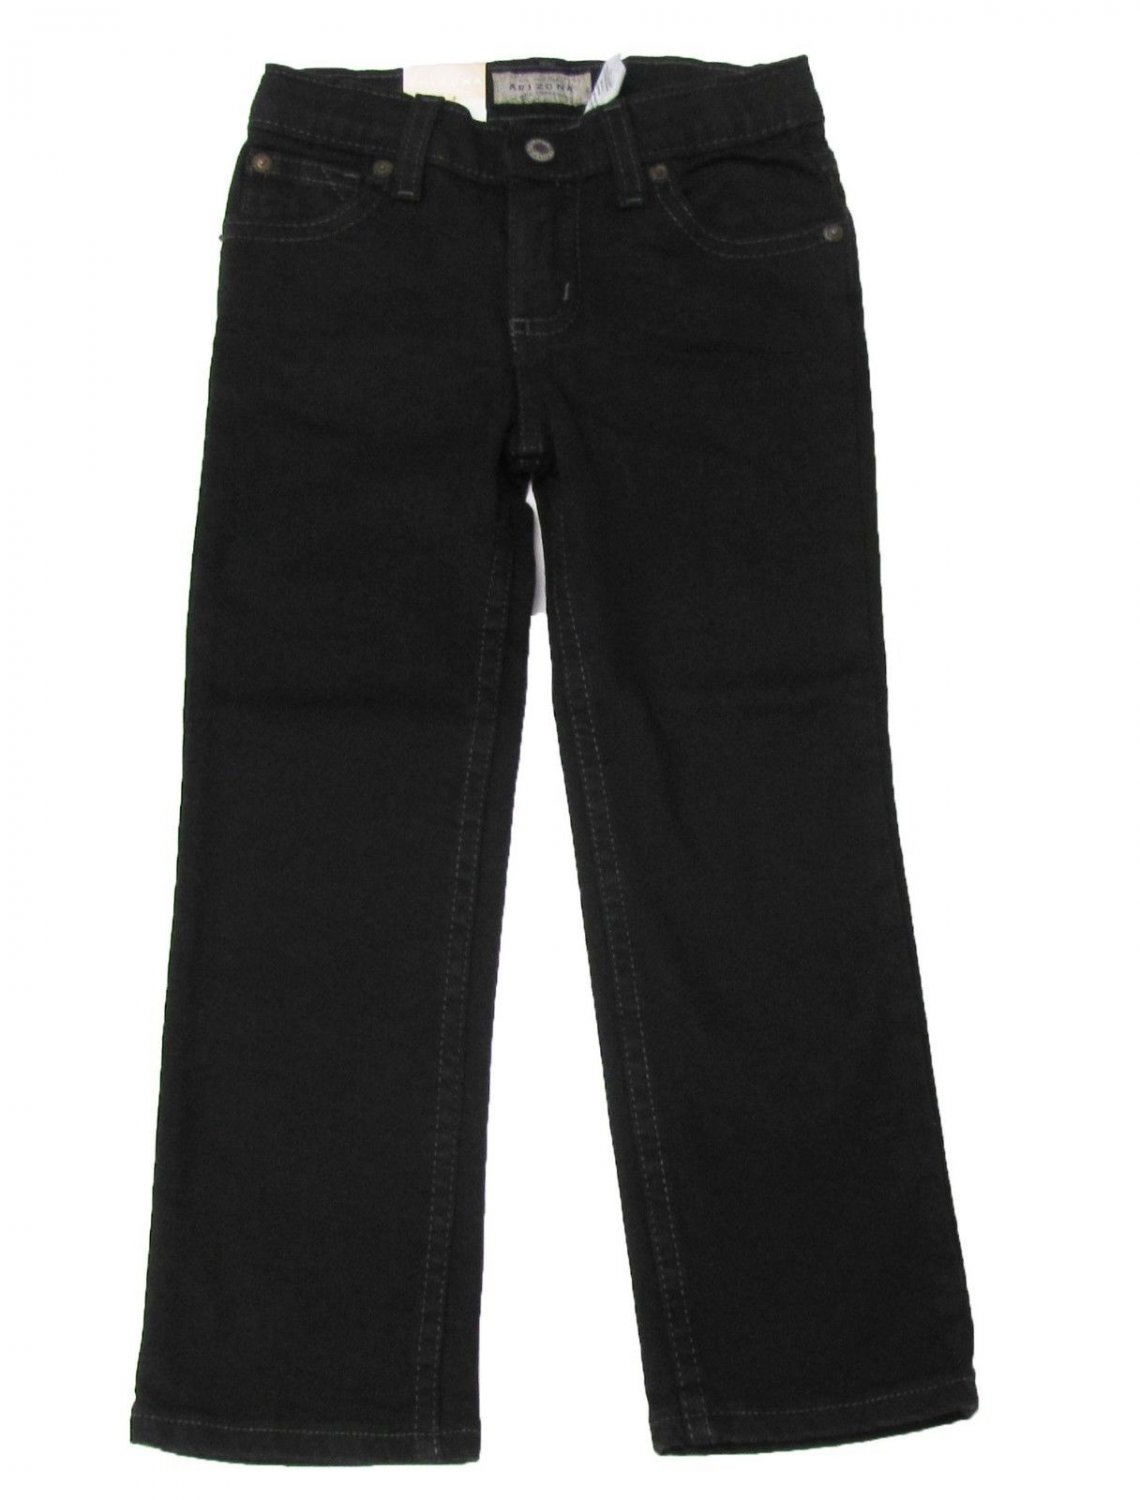 Arizona Girls 4 Slim Straight Leg Jeans with Adjustable Waist Black Denim Kids